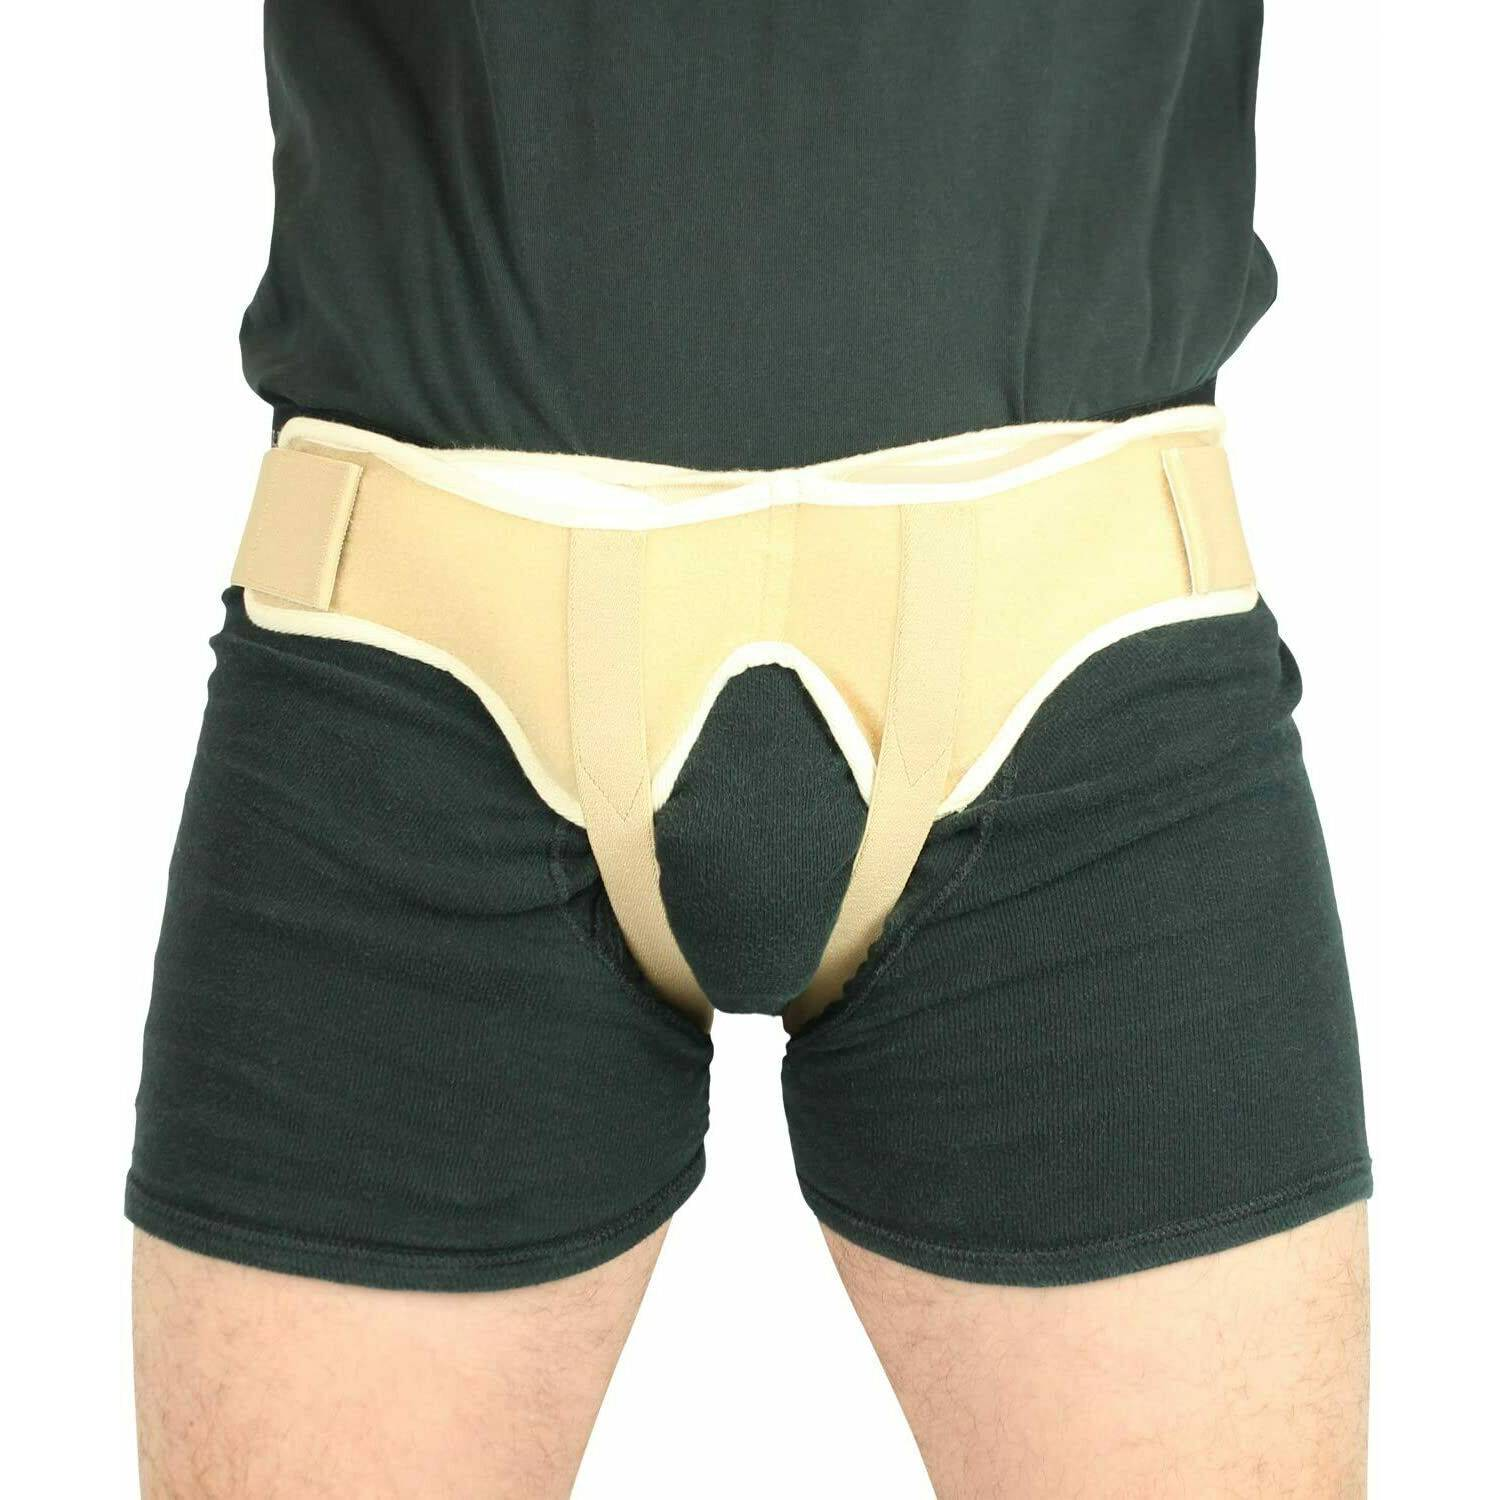 Hernia Belt - Support Truss